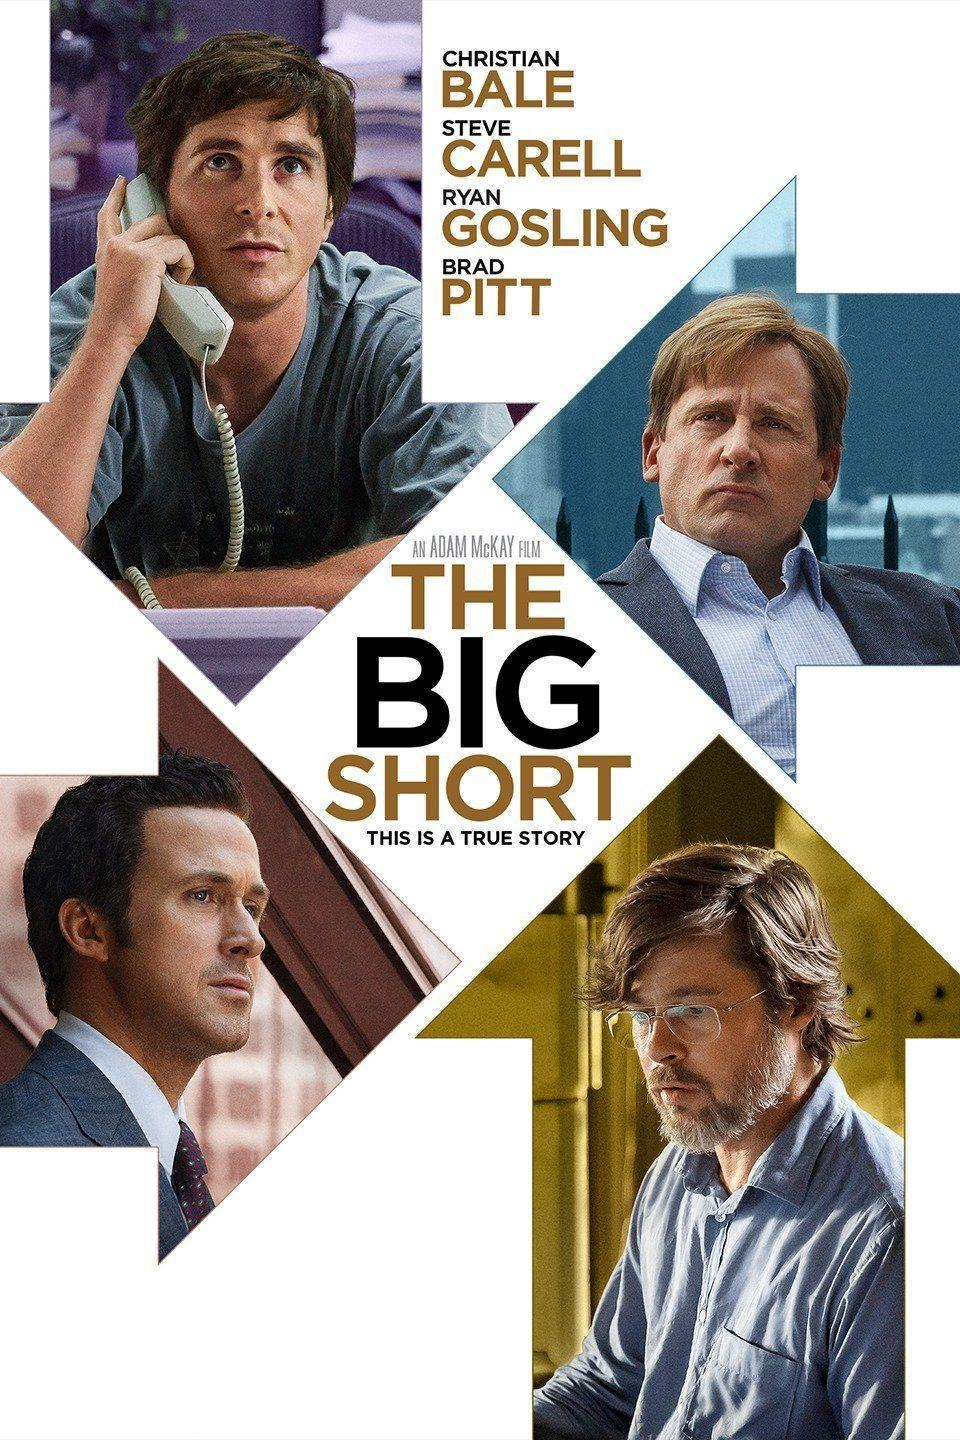 """<p><a class=""""link rapid-noclick-resp"""" href=""""https://www.amazon.com/Big-Short-Christian-Bale/dp/B019969US8?tag=syn-yahoo-20&ascsubtag=%5Bartid%7C10063.g.35716832%5Bsrc%7Cyahoo-us"""" rel=""""nofollow noopener"""" target=""""_blank"""" data-ylk=""""slk:Watch Now"""">Watch Now</a></p><p>Based on the best-selling book by Michael Lewis, <em>The Big Short</em> tells the story of a small cadre who saw the 2008 financial crash coming. The acting is superb—what with Christian Bale, Steve Carell, Ryan Gosling, and Brad Pitt, how could it not be?—and the film manages to make the minutiae of Wall Street comprehensible, even interesting. </p>"""